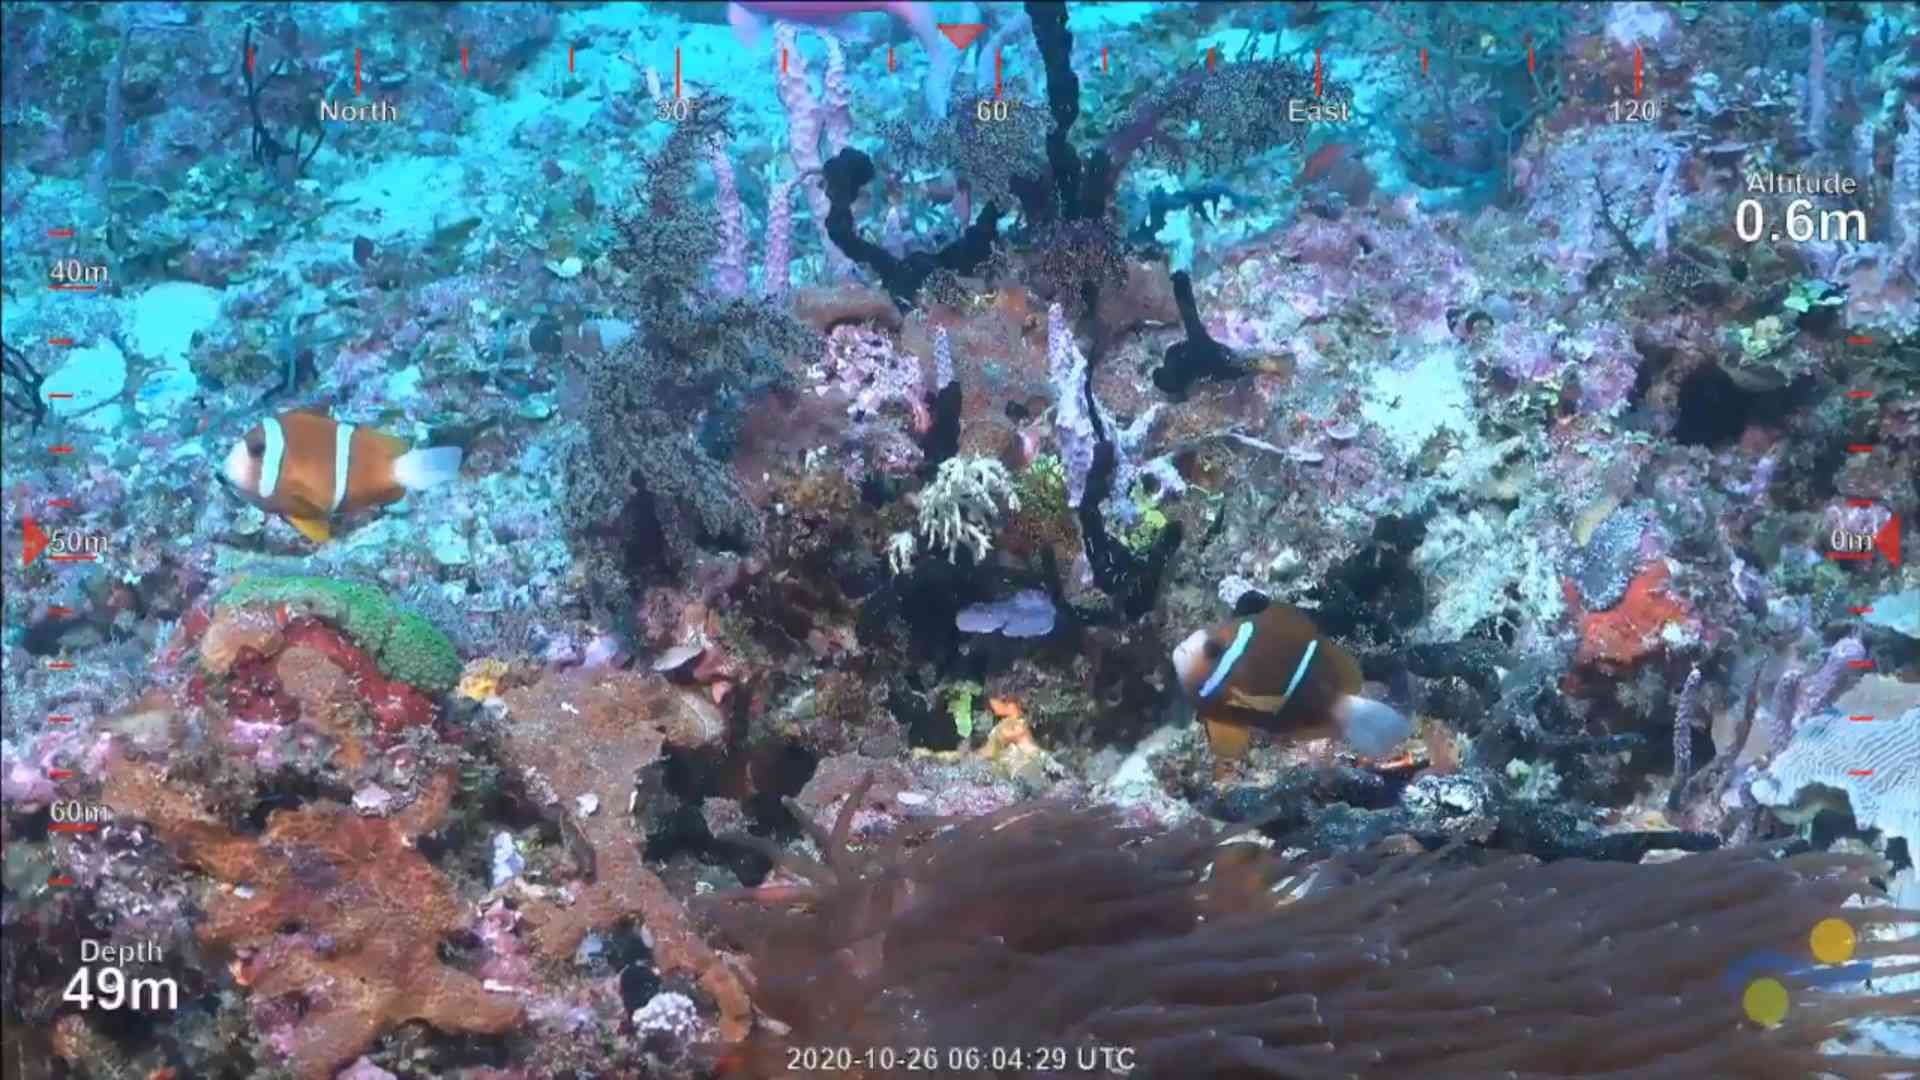 screenshot from the new reef dive